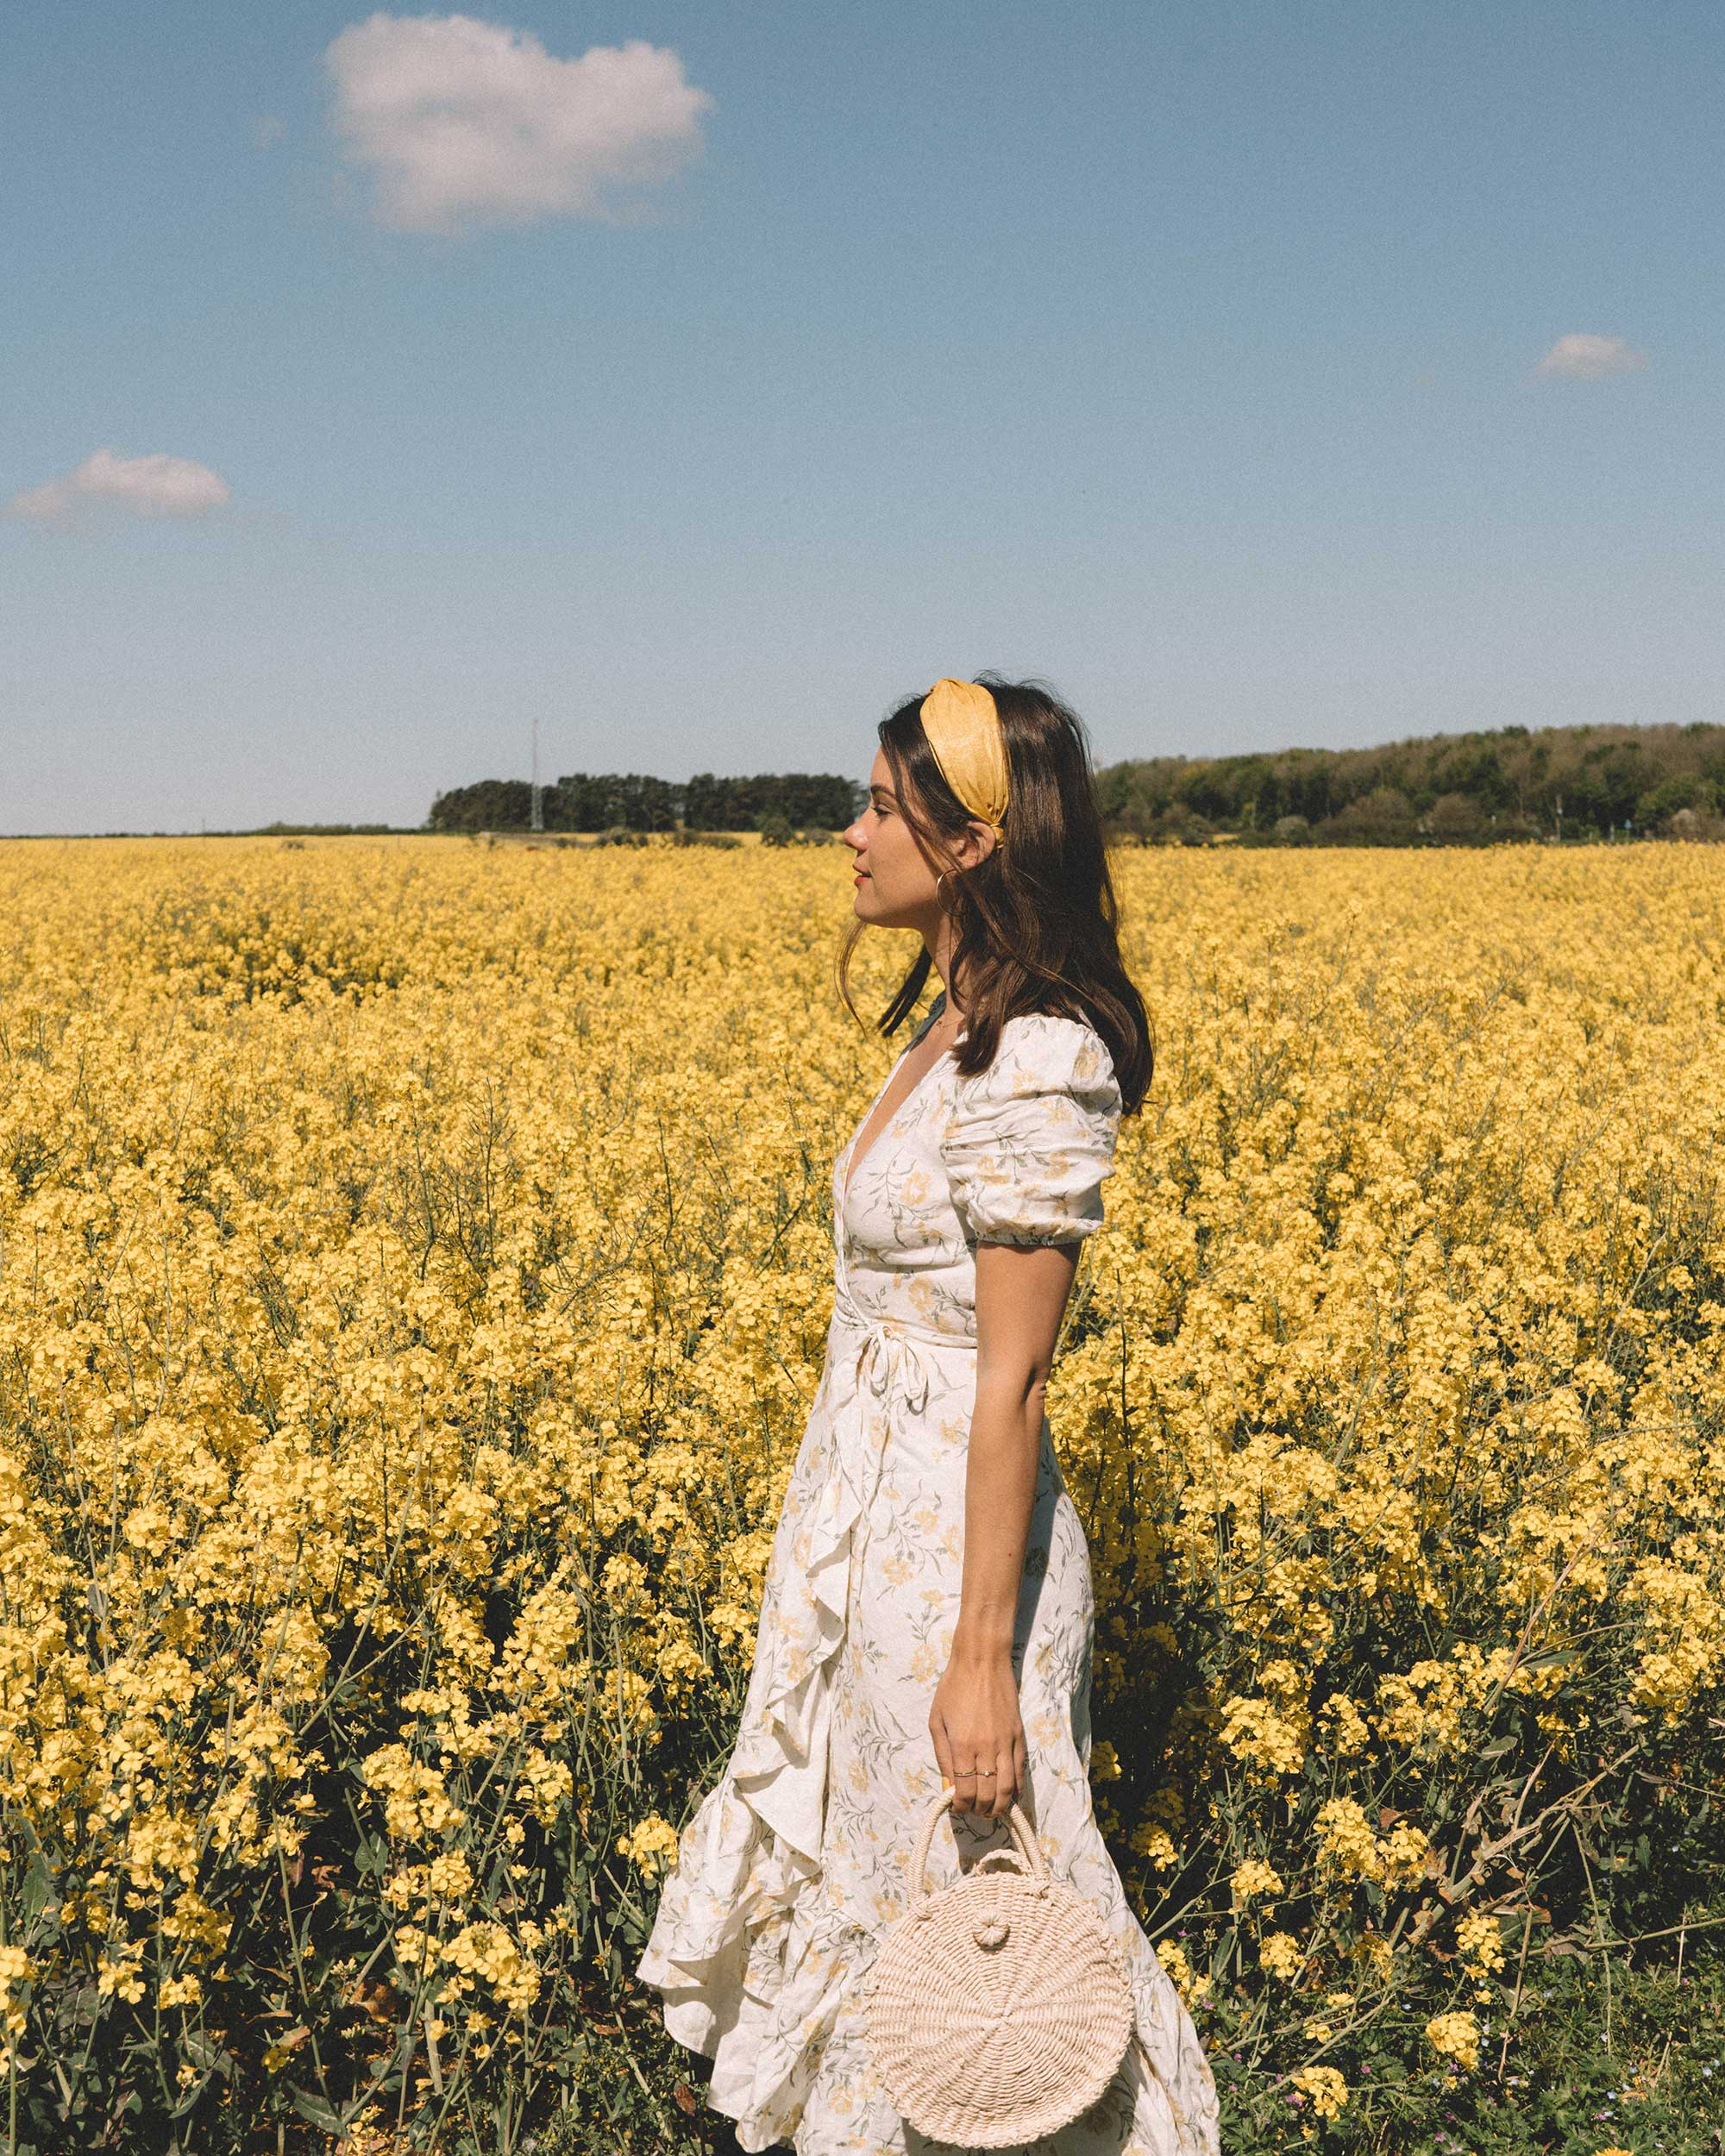 Sarah Butler of Sarah Styles Seattle wears And Other Stories Ruffled Linen Wrap Midi Dress and round woven bag in England Countryside for the perfect floral summer dress | @sarahchristine 2.jpg